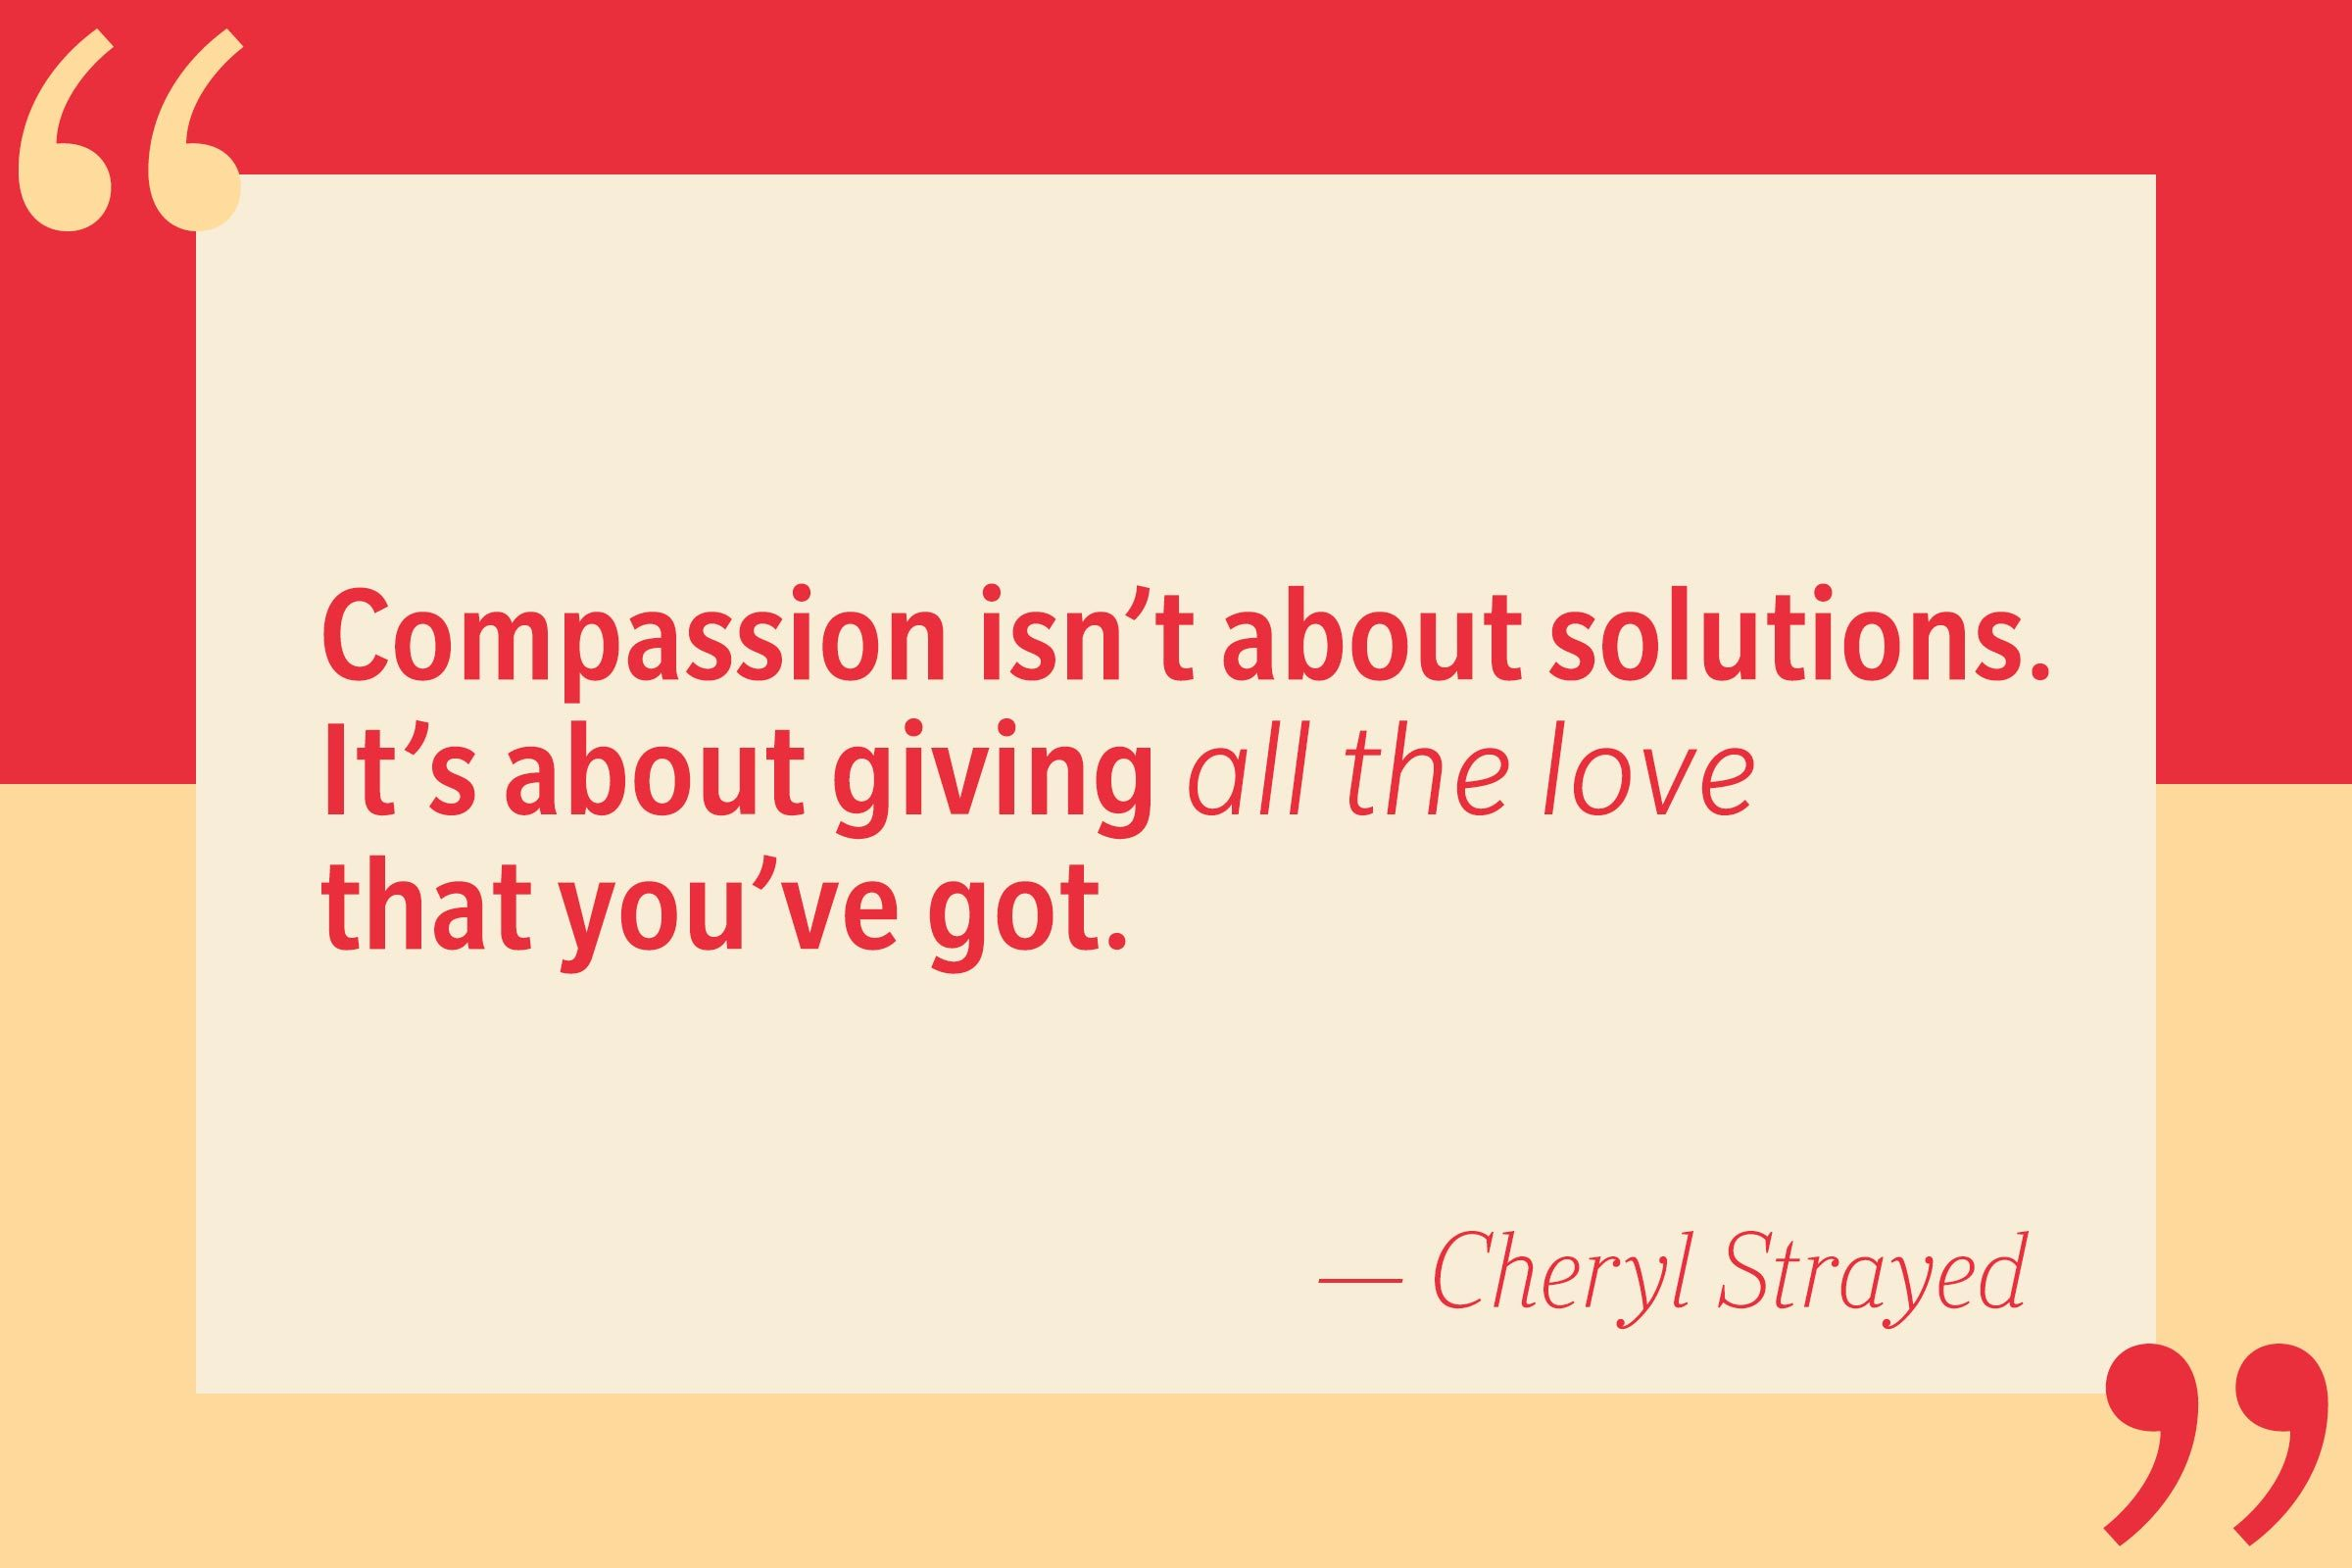 Compassion isn't about solutions. It's about giving all the love that you've got. — Cheryl Strayed